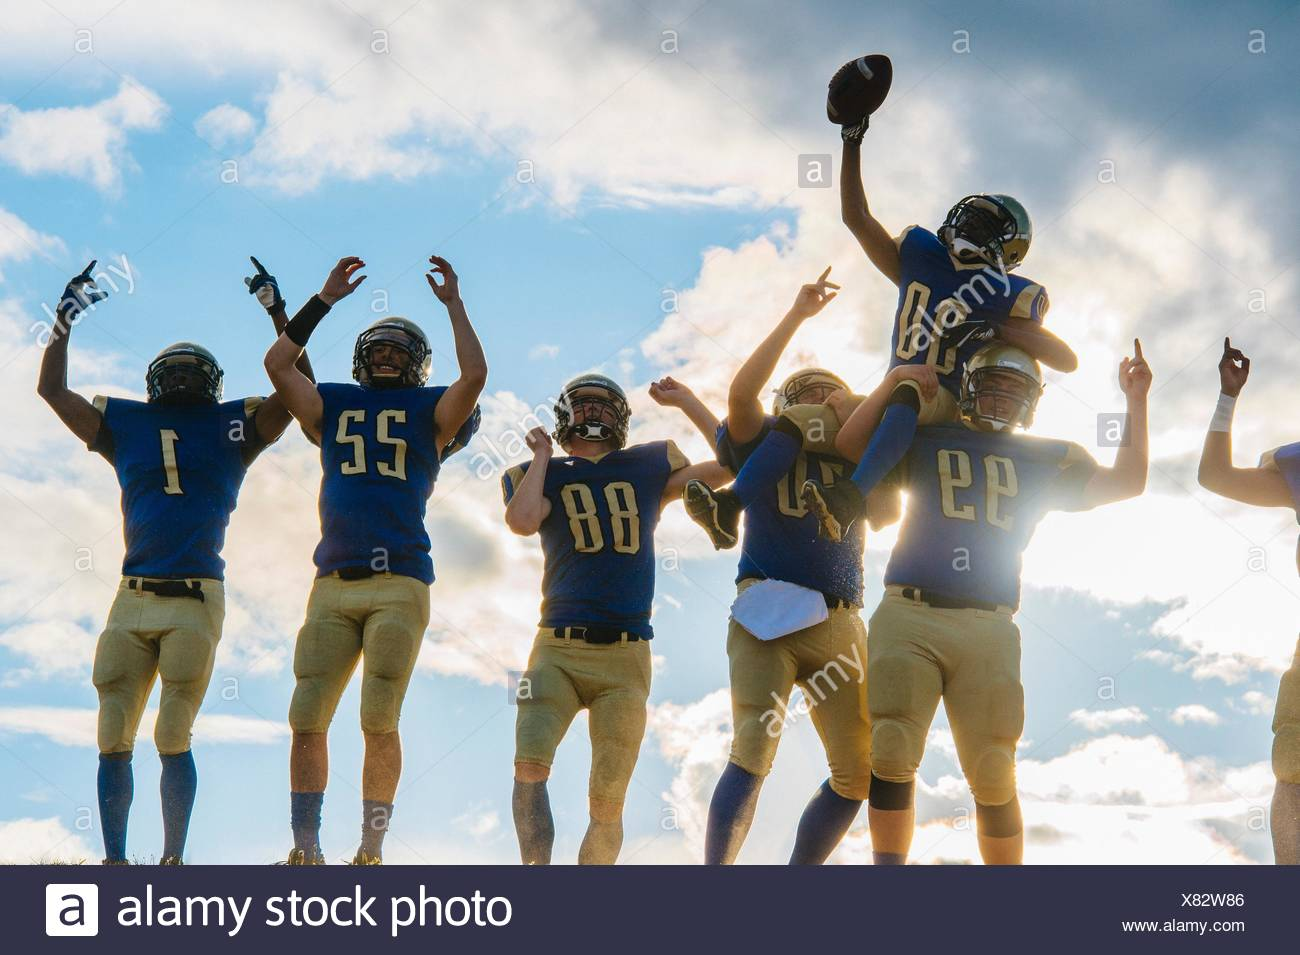 Group of young american football players, celebrating - Stock Image